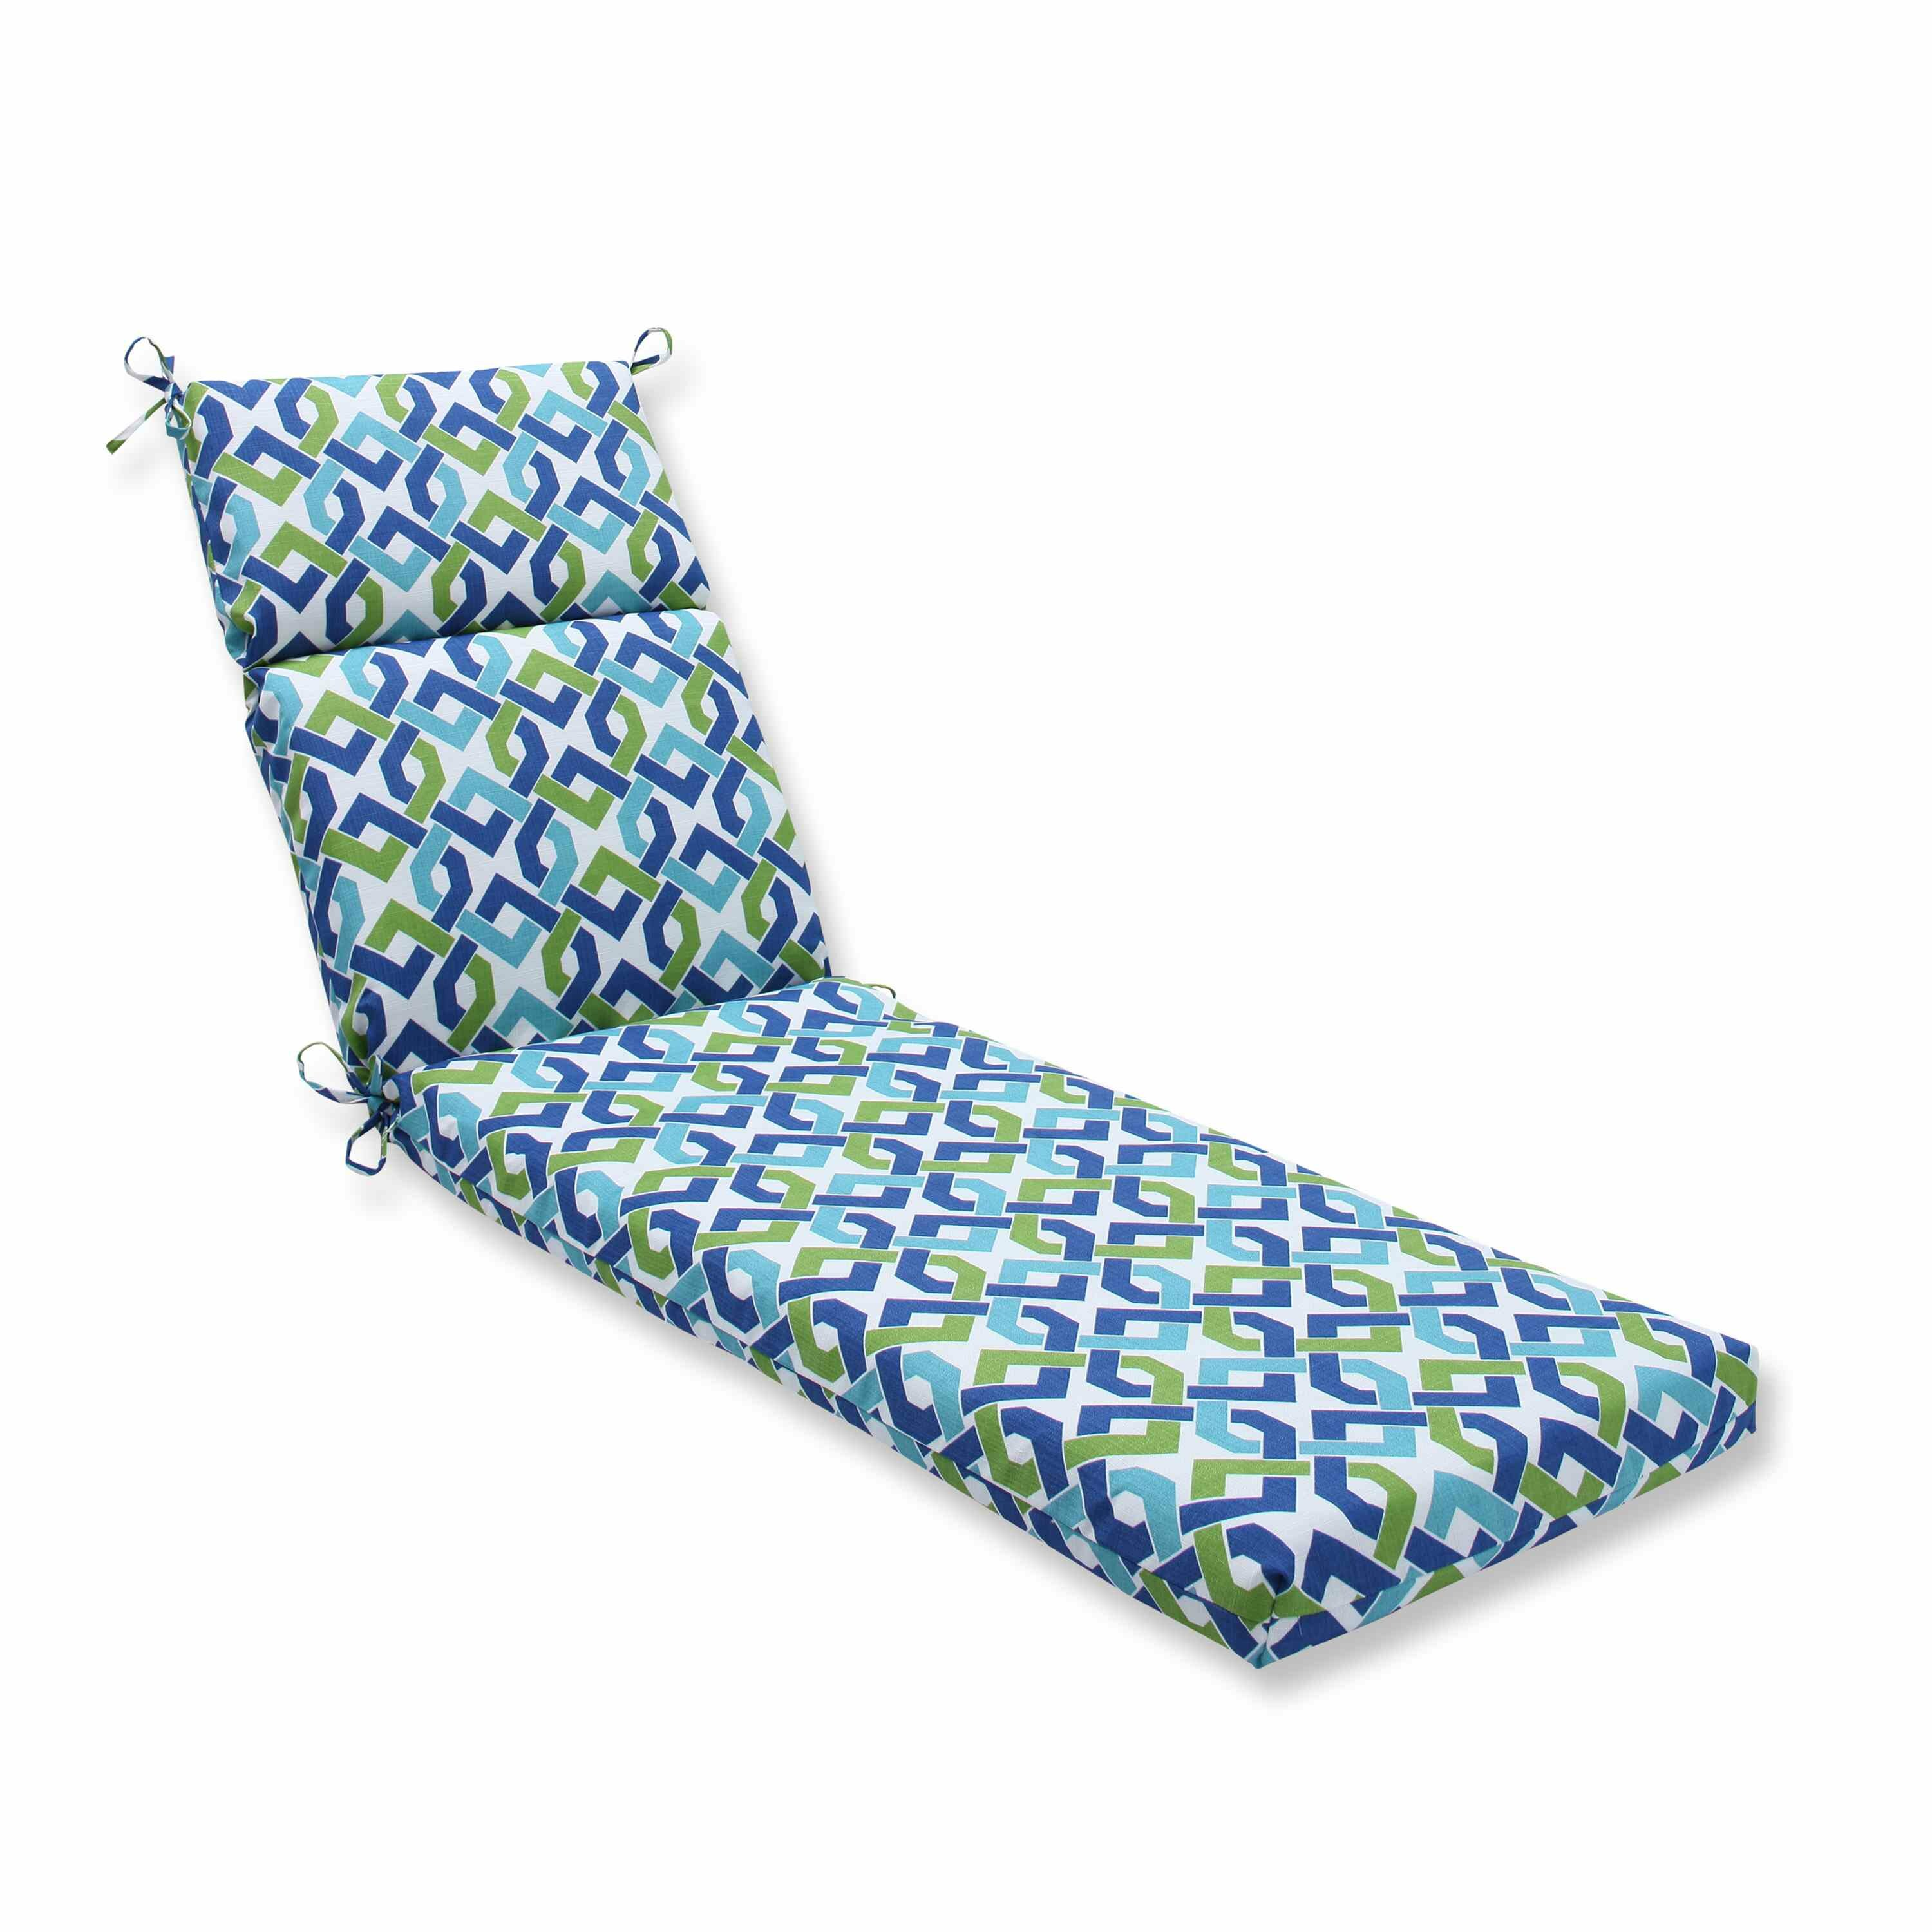 Pillow perfect reiser outdoor chaise lounge cushion wayfair for Chaise cushions on sale